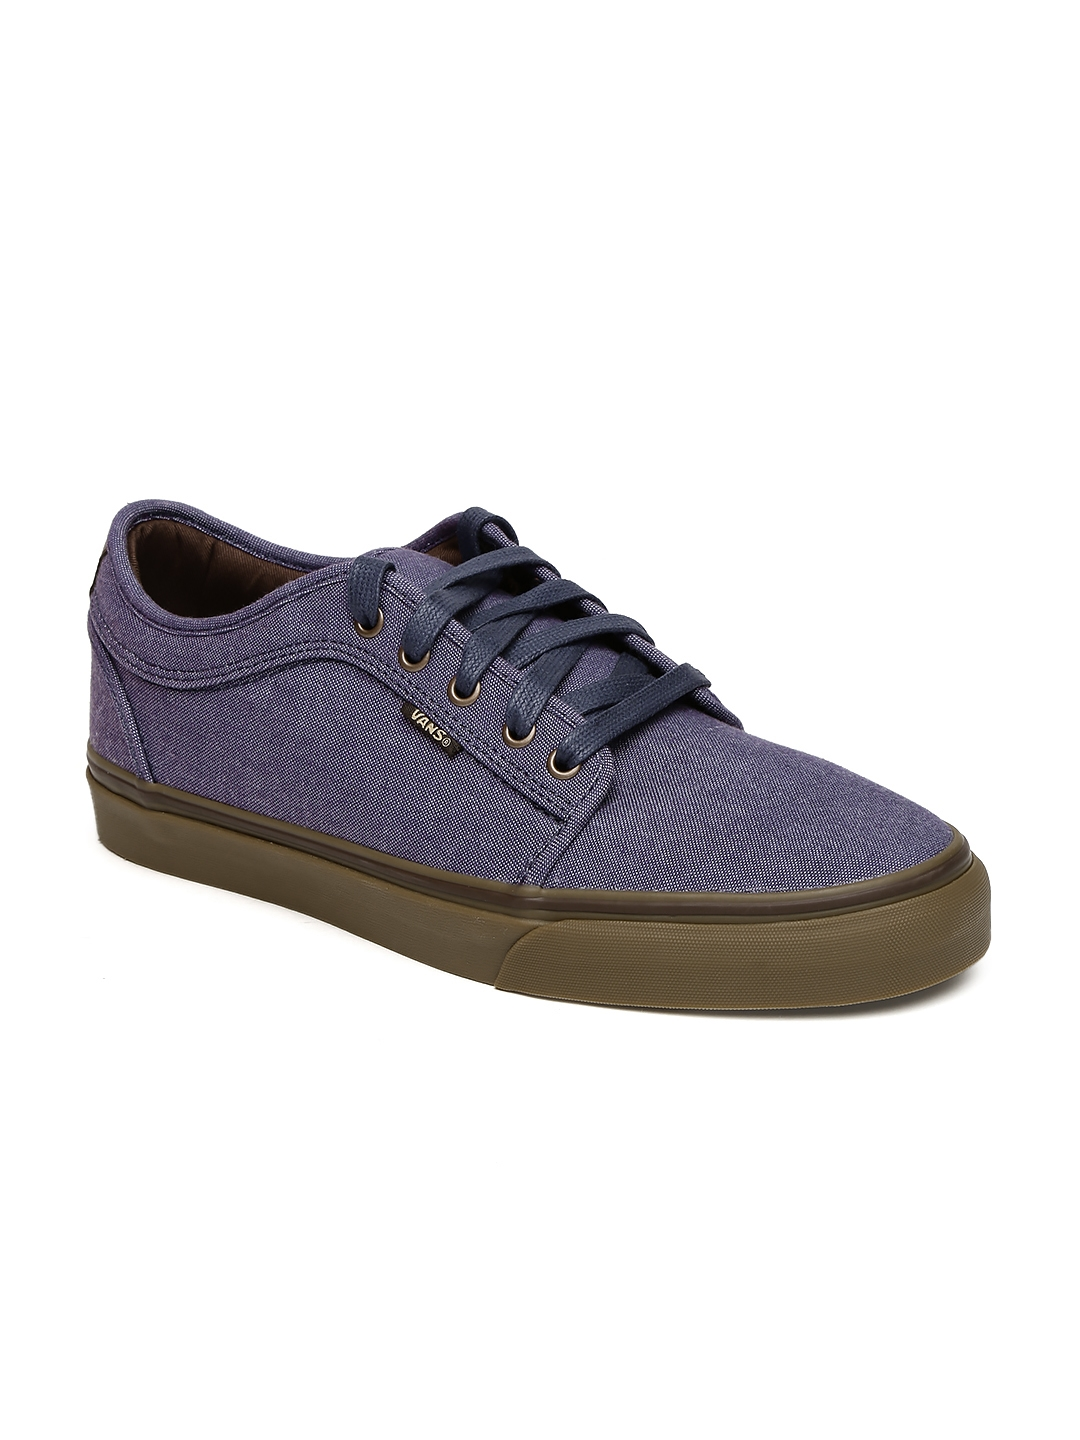 bc66d66bea70 Low for Casual Buy Men Men Purple Sneakers Vans Chukka Shoes xq8gIT6qw